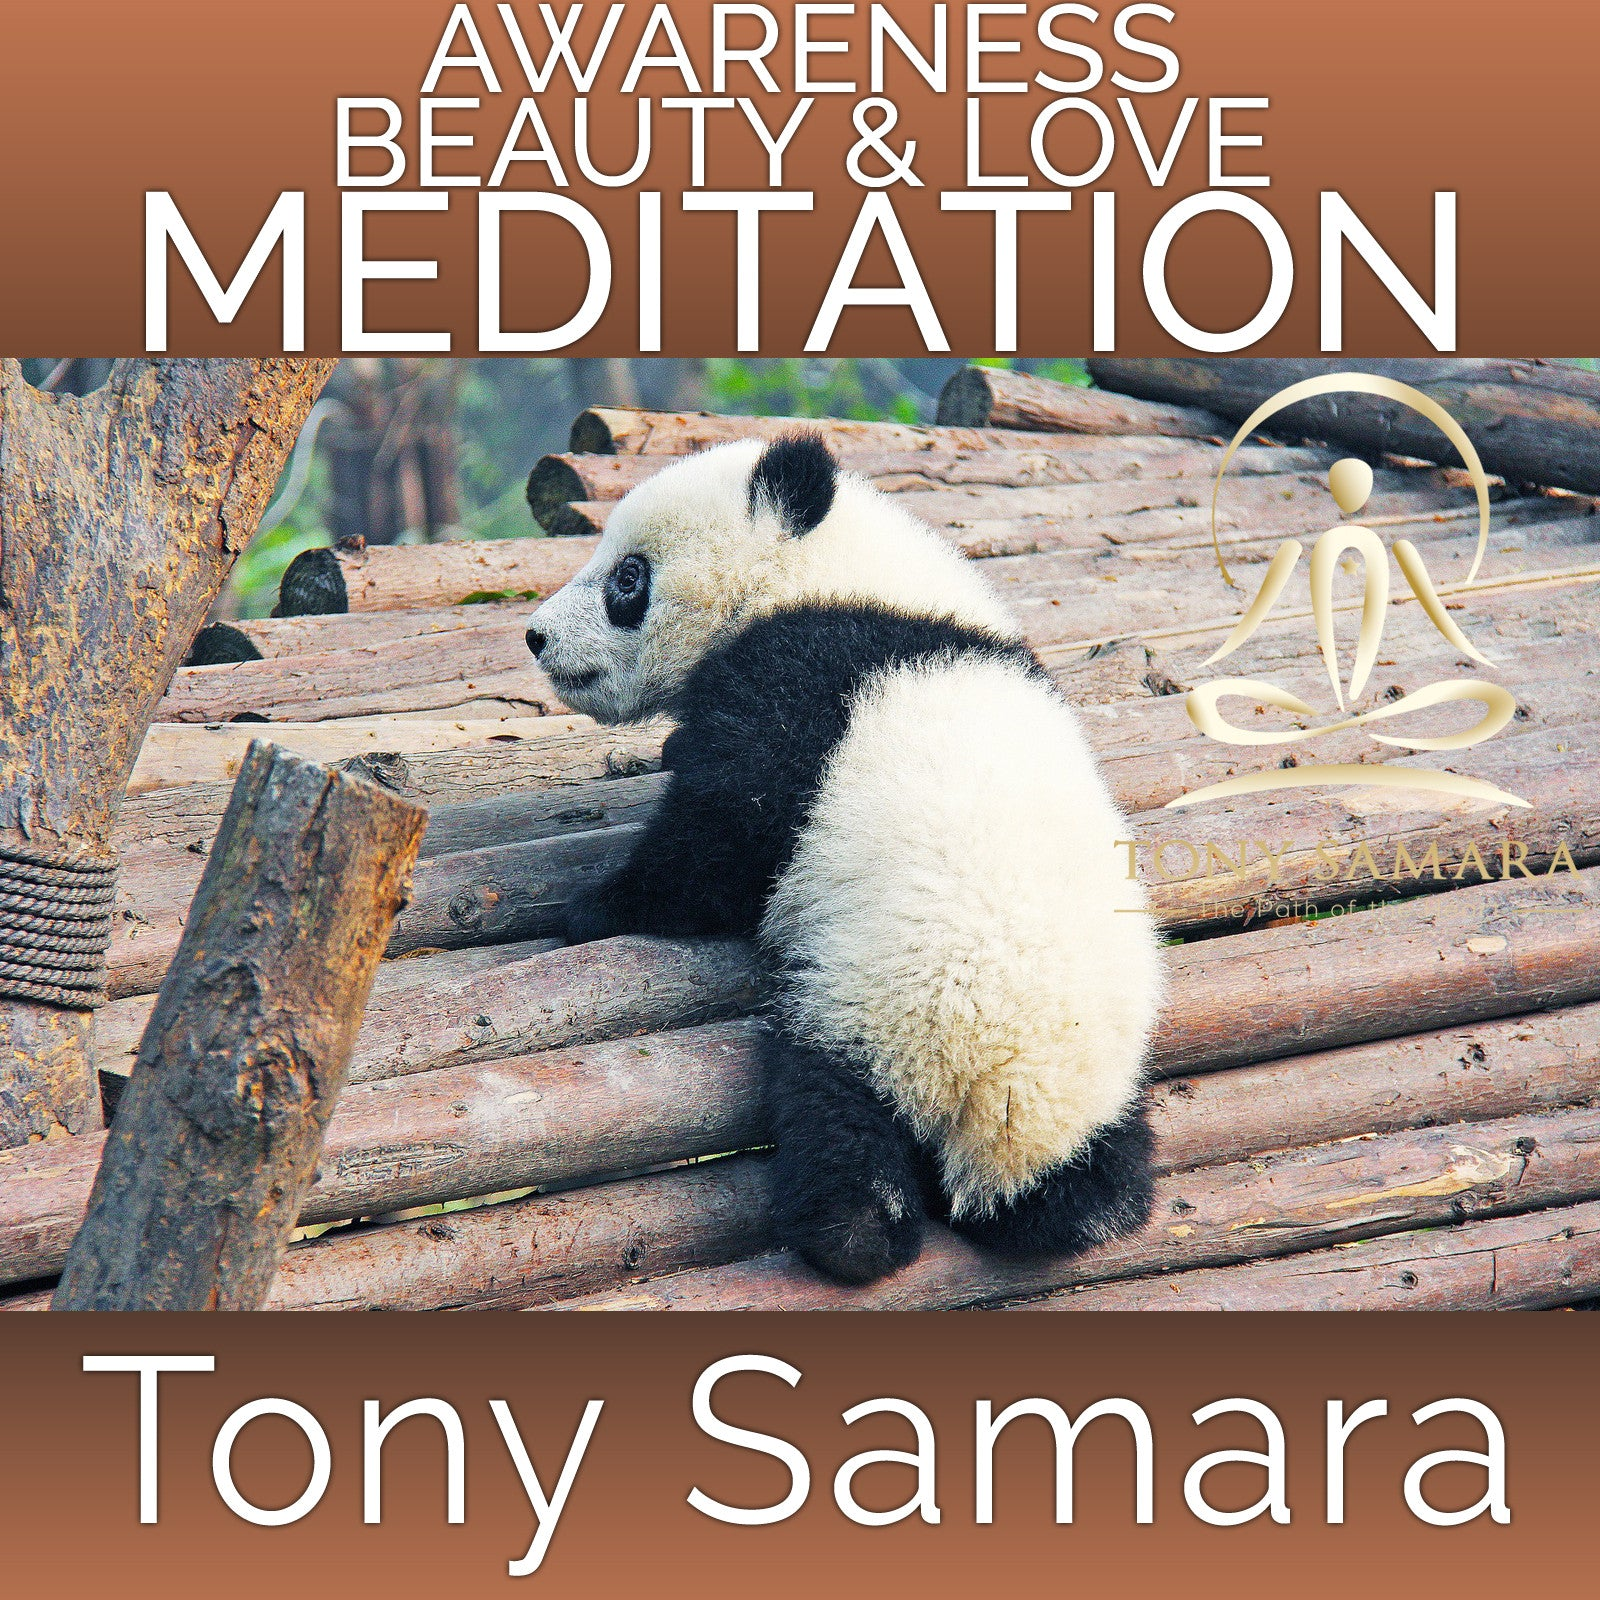 Awareness Beauty & Love Meditation (MP3 Audio Download) - Tony Samara Meditation